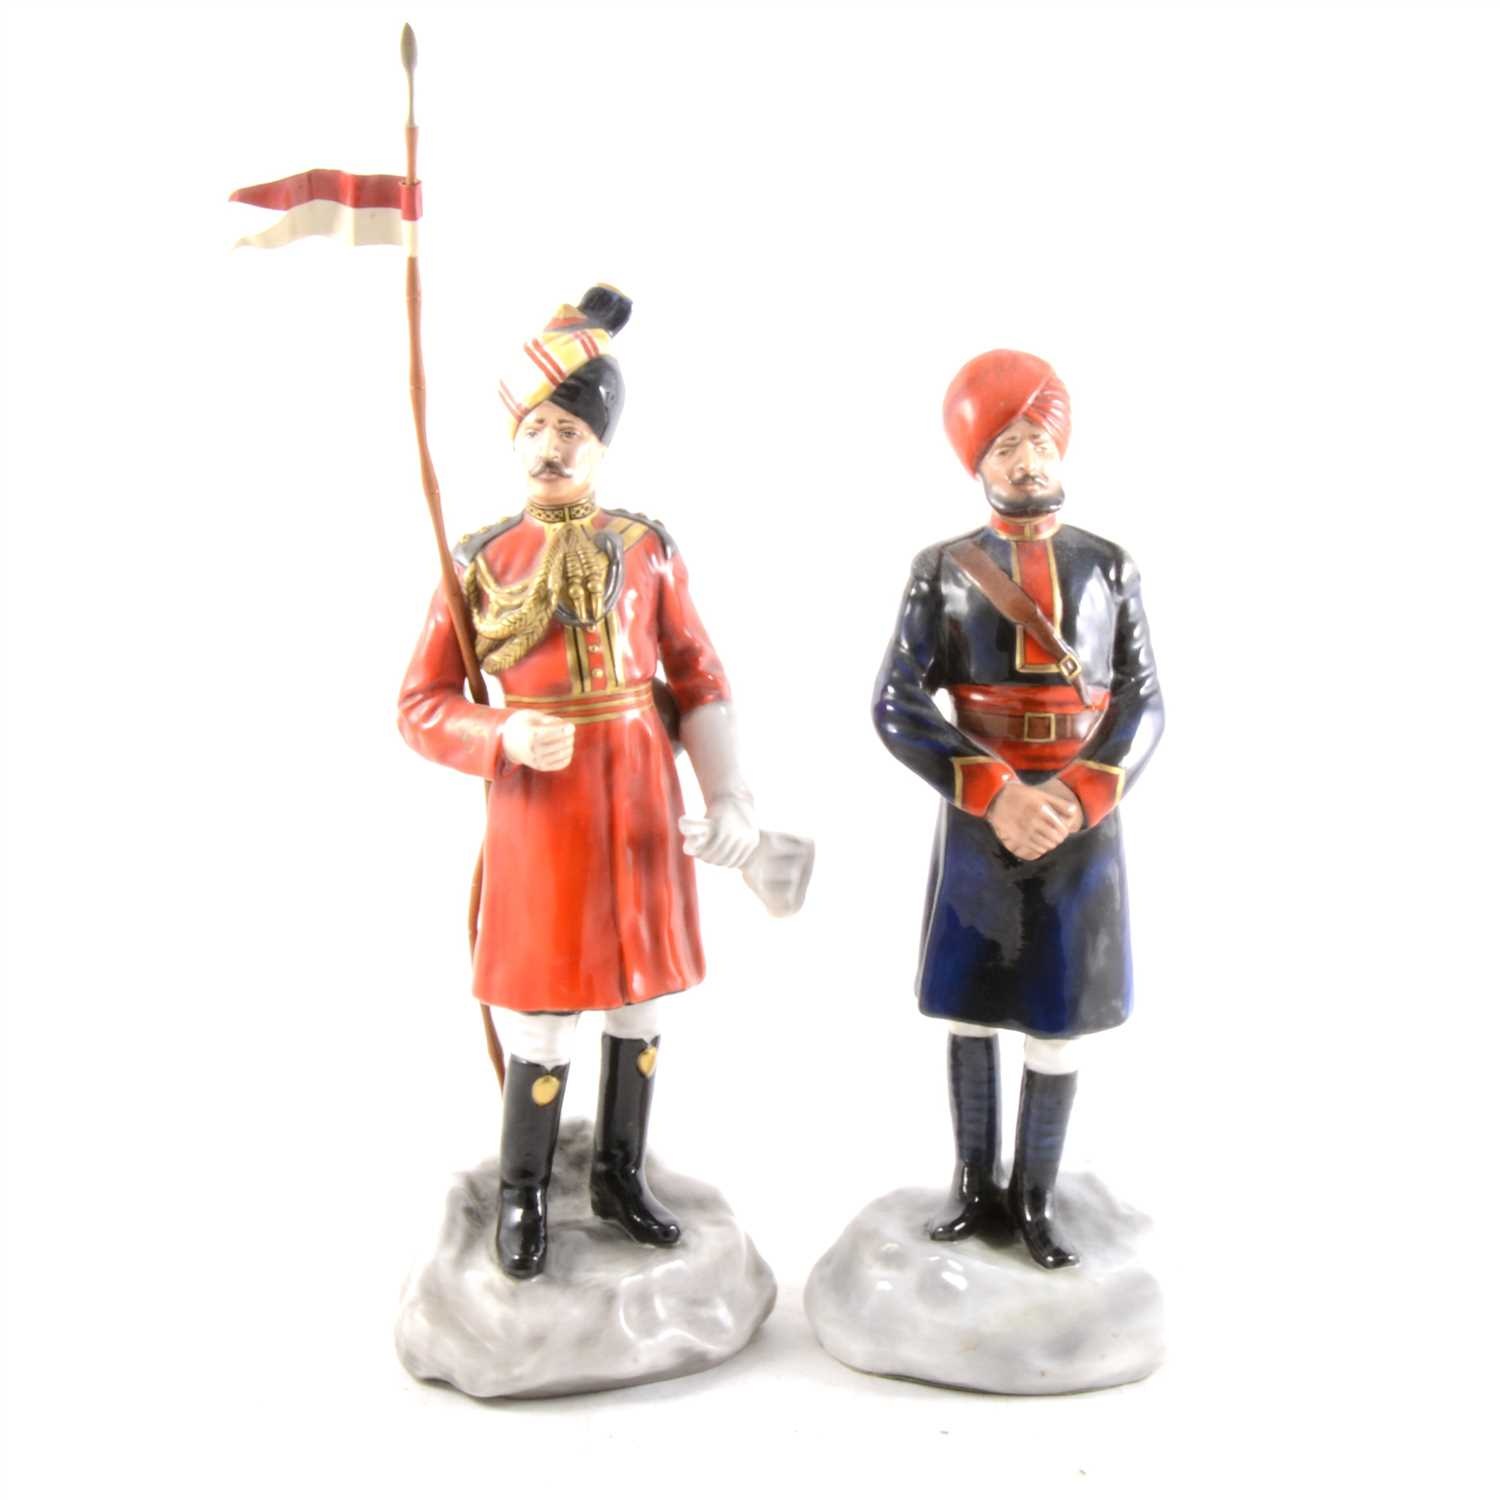 Lot 15-Two limited edition military porcelain figures by Michael Sutty